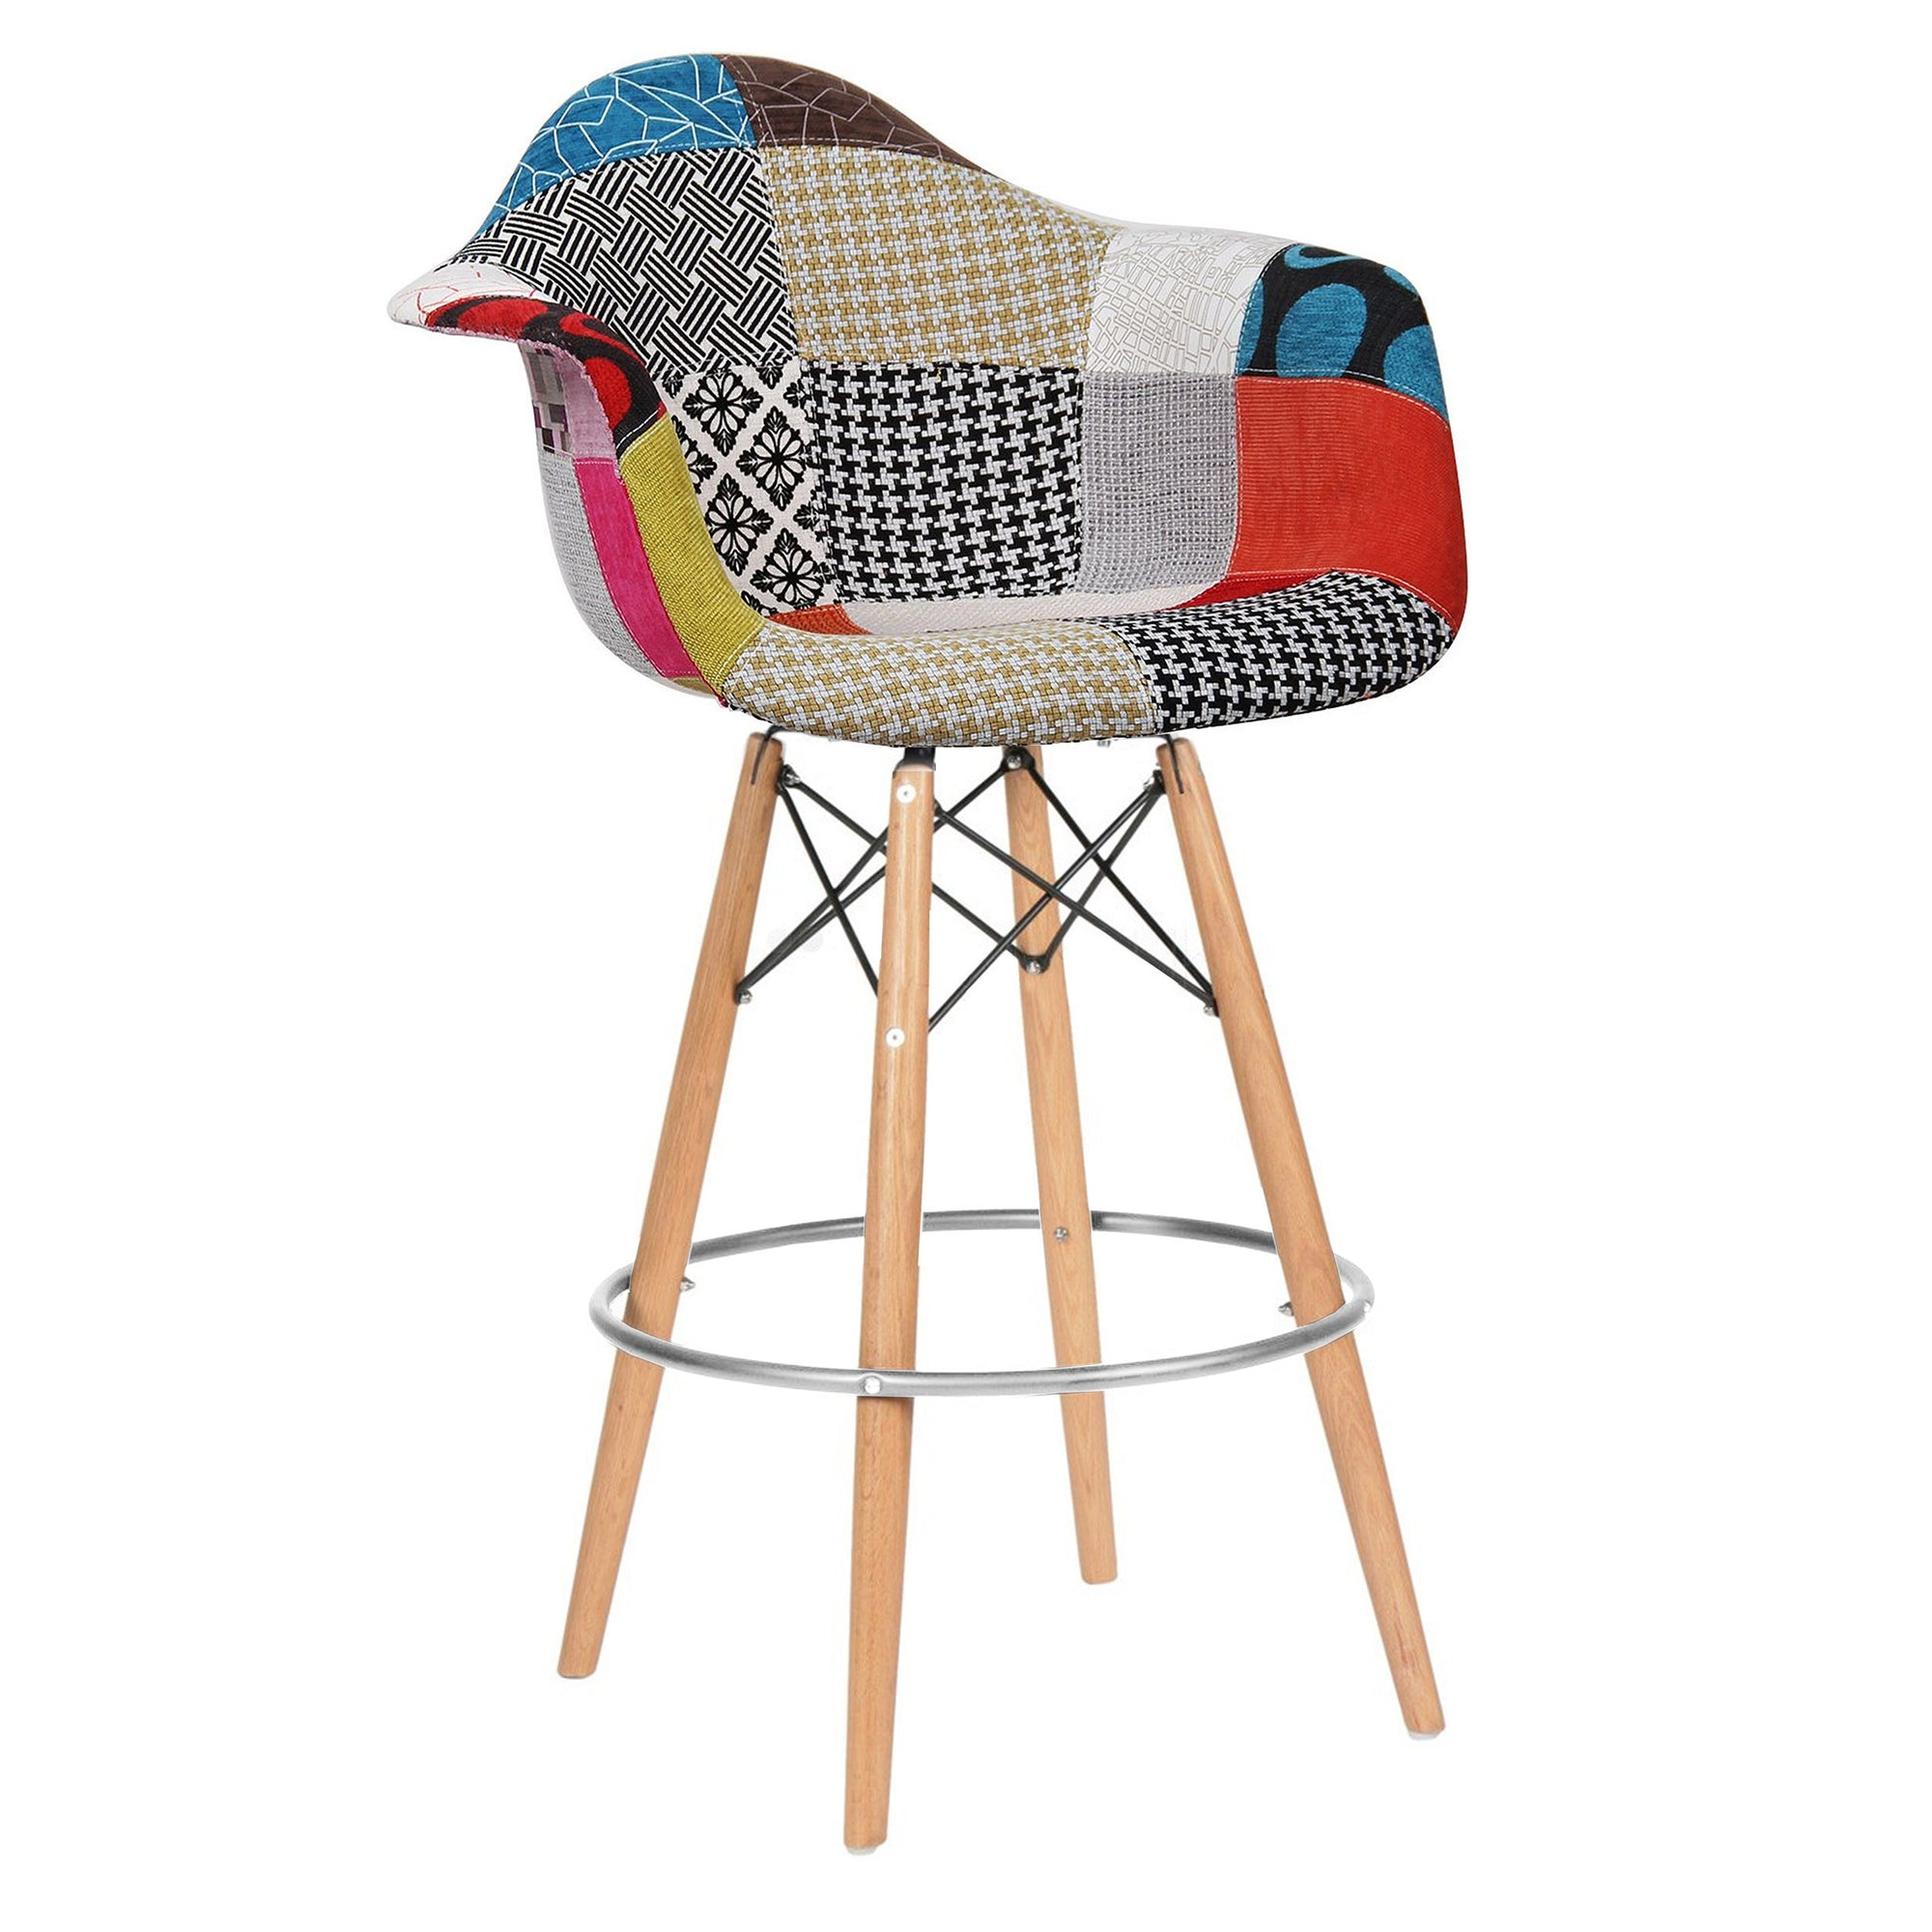 Bar Chair-Fabric- MSB0011F -  كرسي مرتفع - قماش - Shop Online Furniture and Home Decor Store in Dubai, UAE at ebarza